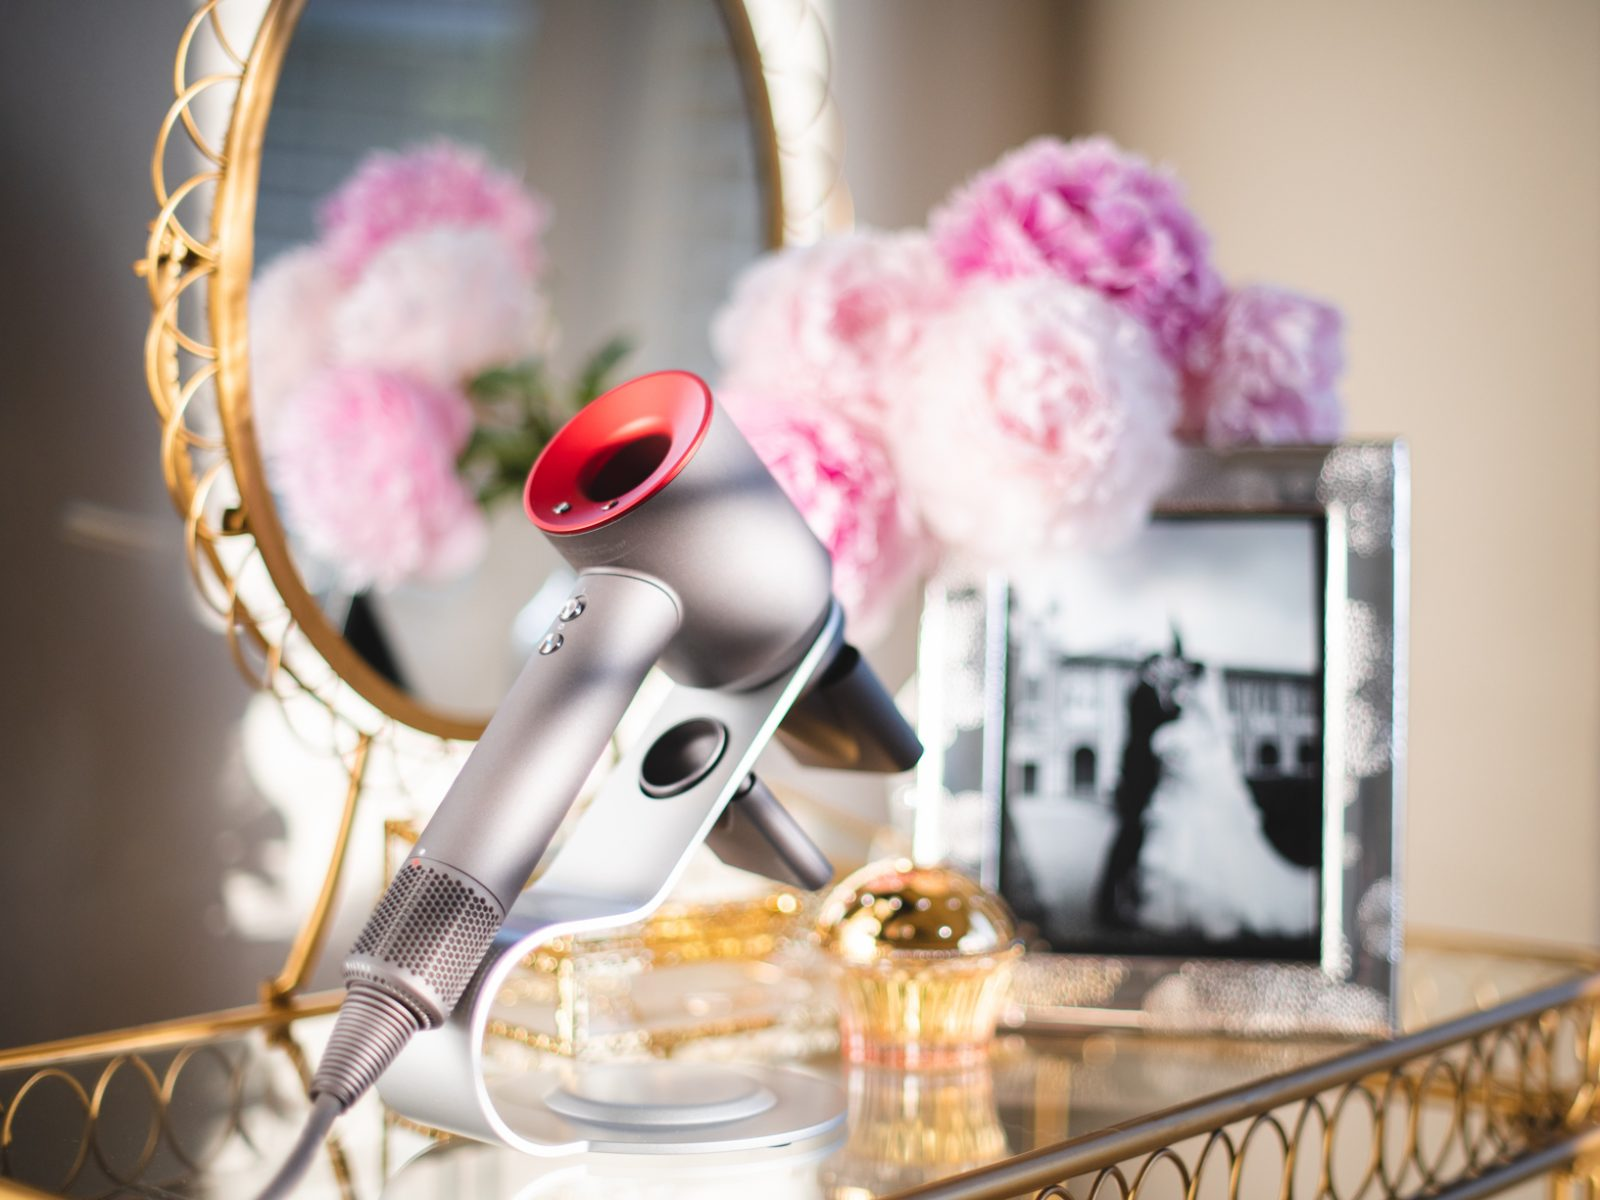 Dyson Hairdryer with a stand on vanity table